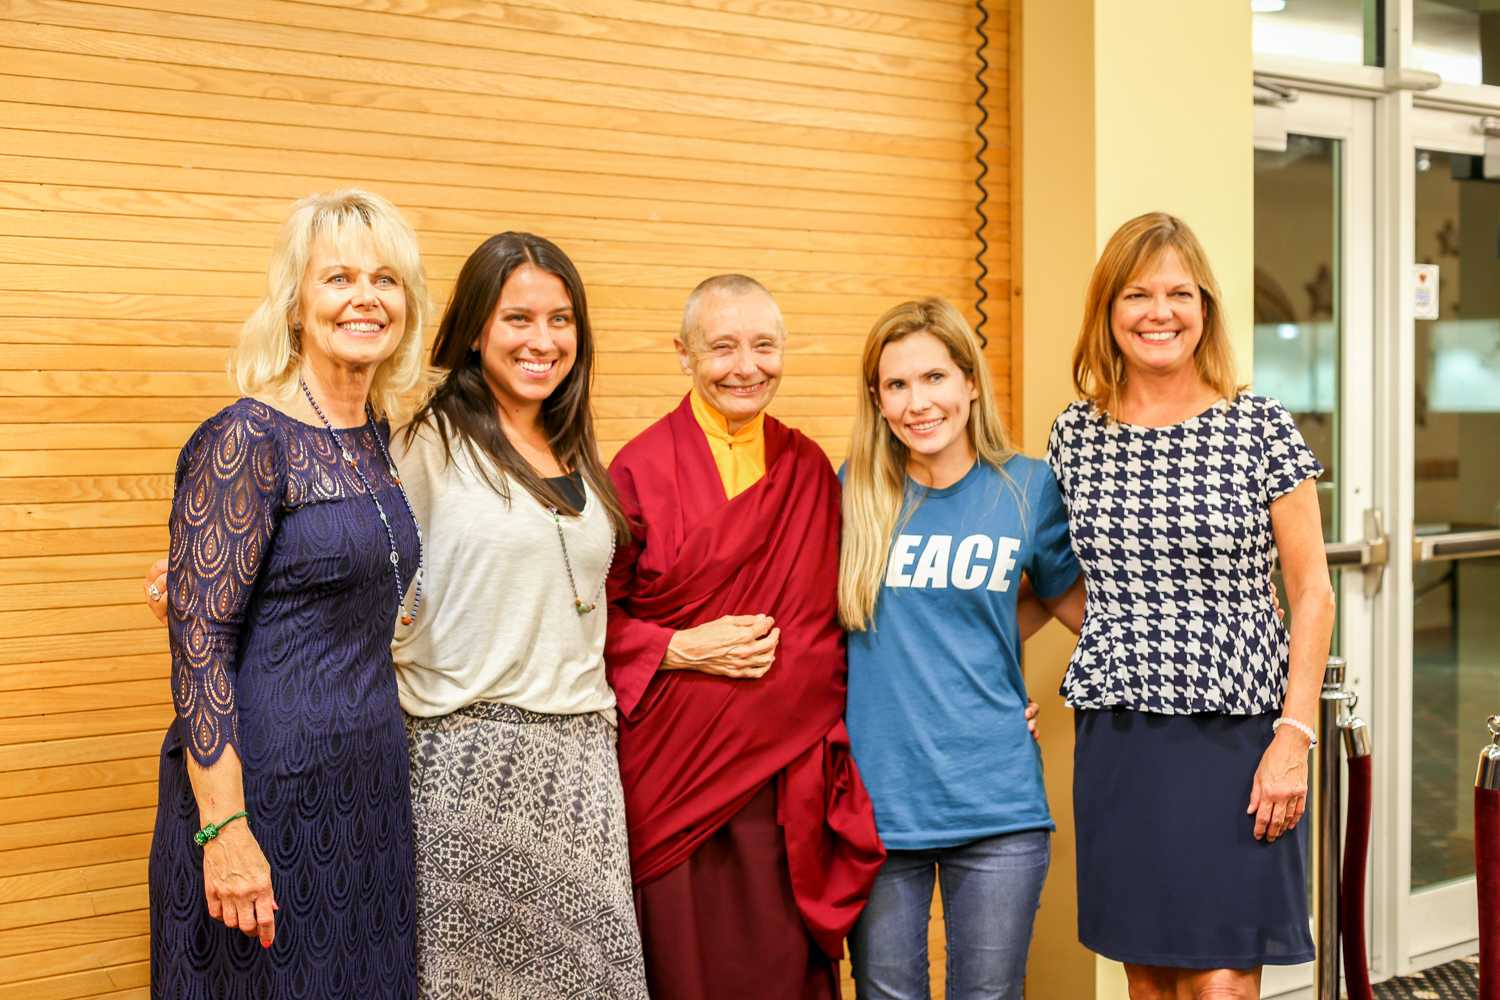 Jetsunma Tenzin Palmo and The Peaceful Mind Peaceful Life team pose for a photo after the lecture on Monday, Jan. 5 in the University Theater. Barb Schmidt (far left) is the founder of the program and her family recently donated $16 million to the athletics program - the biggest donation in FAU history. Kiki Baxter | Contributing Photographer